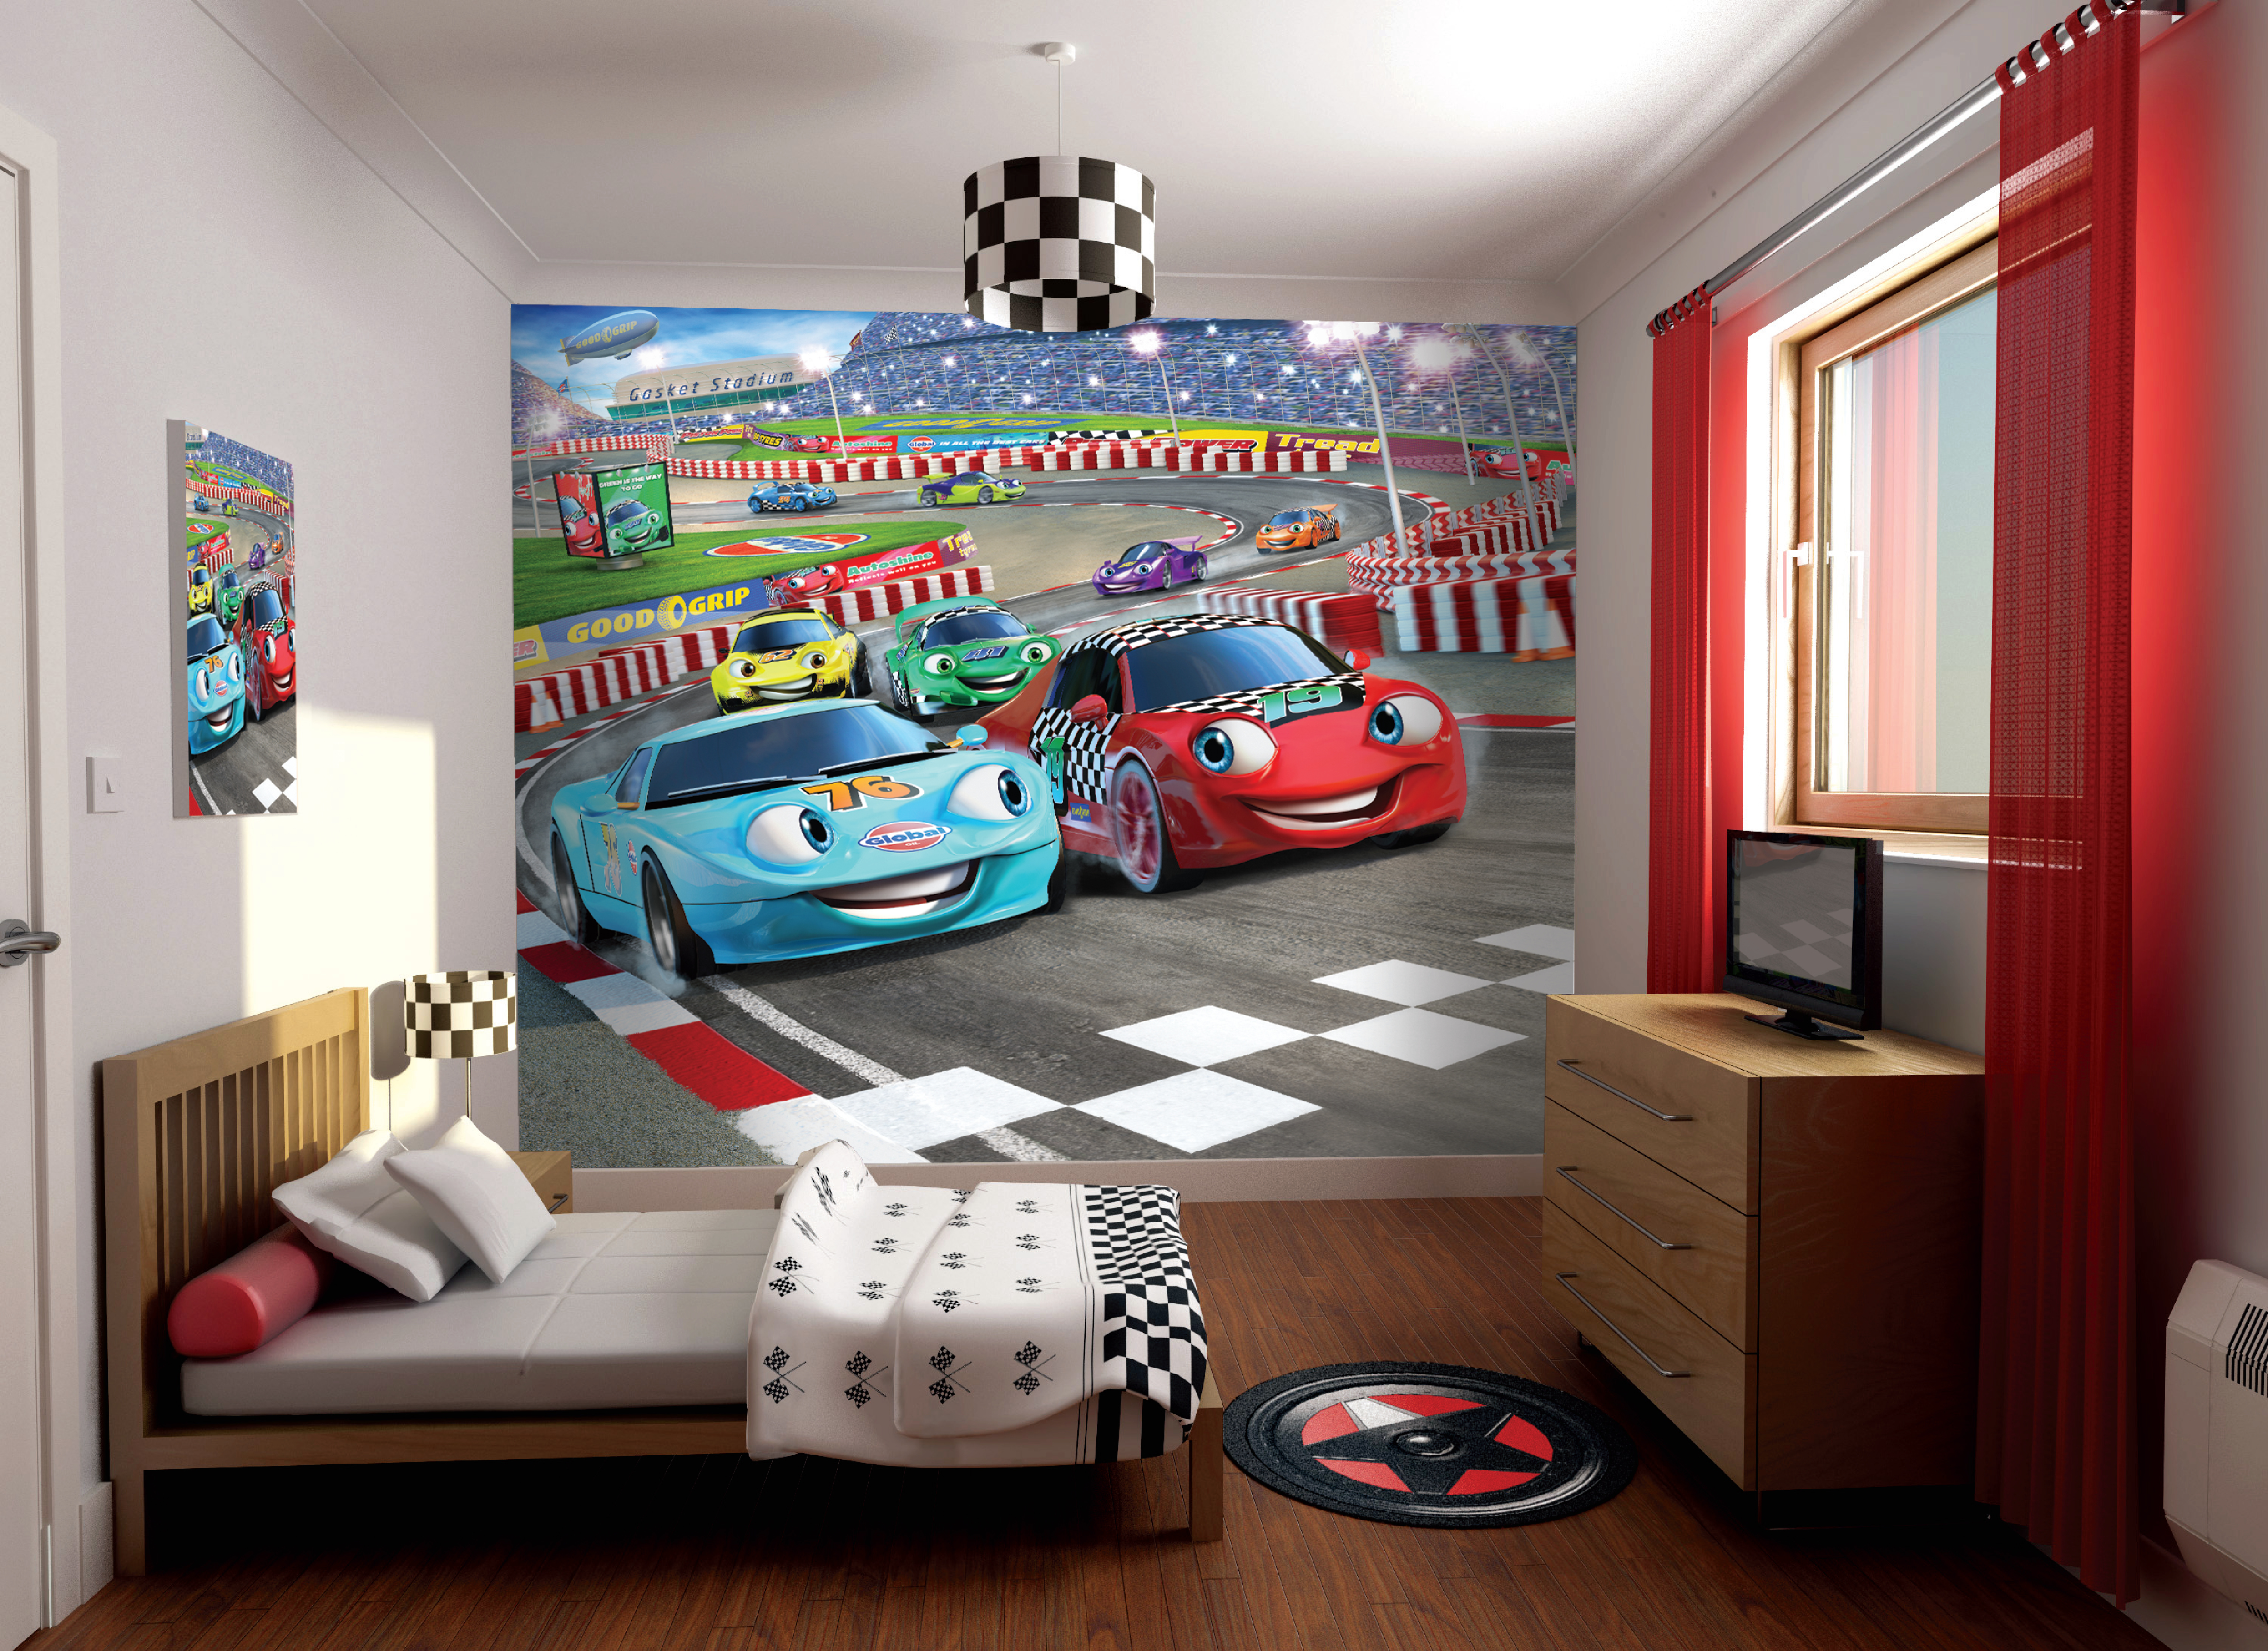 Car Racers 2011 A3 Bedoom Scene